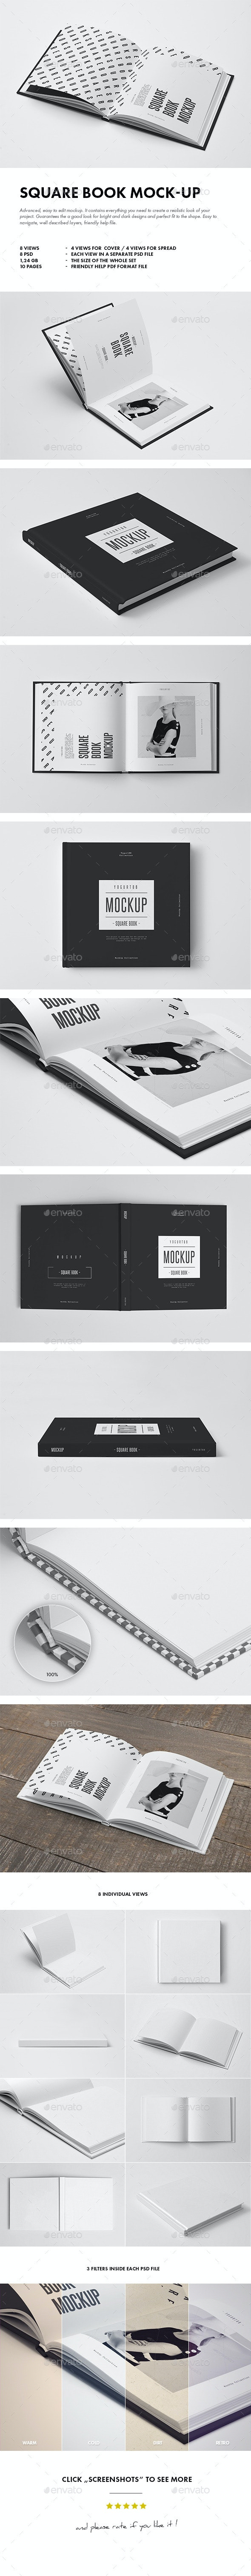 Square Book Mock-up - Books Print